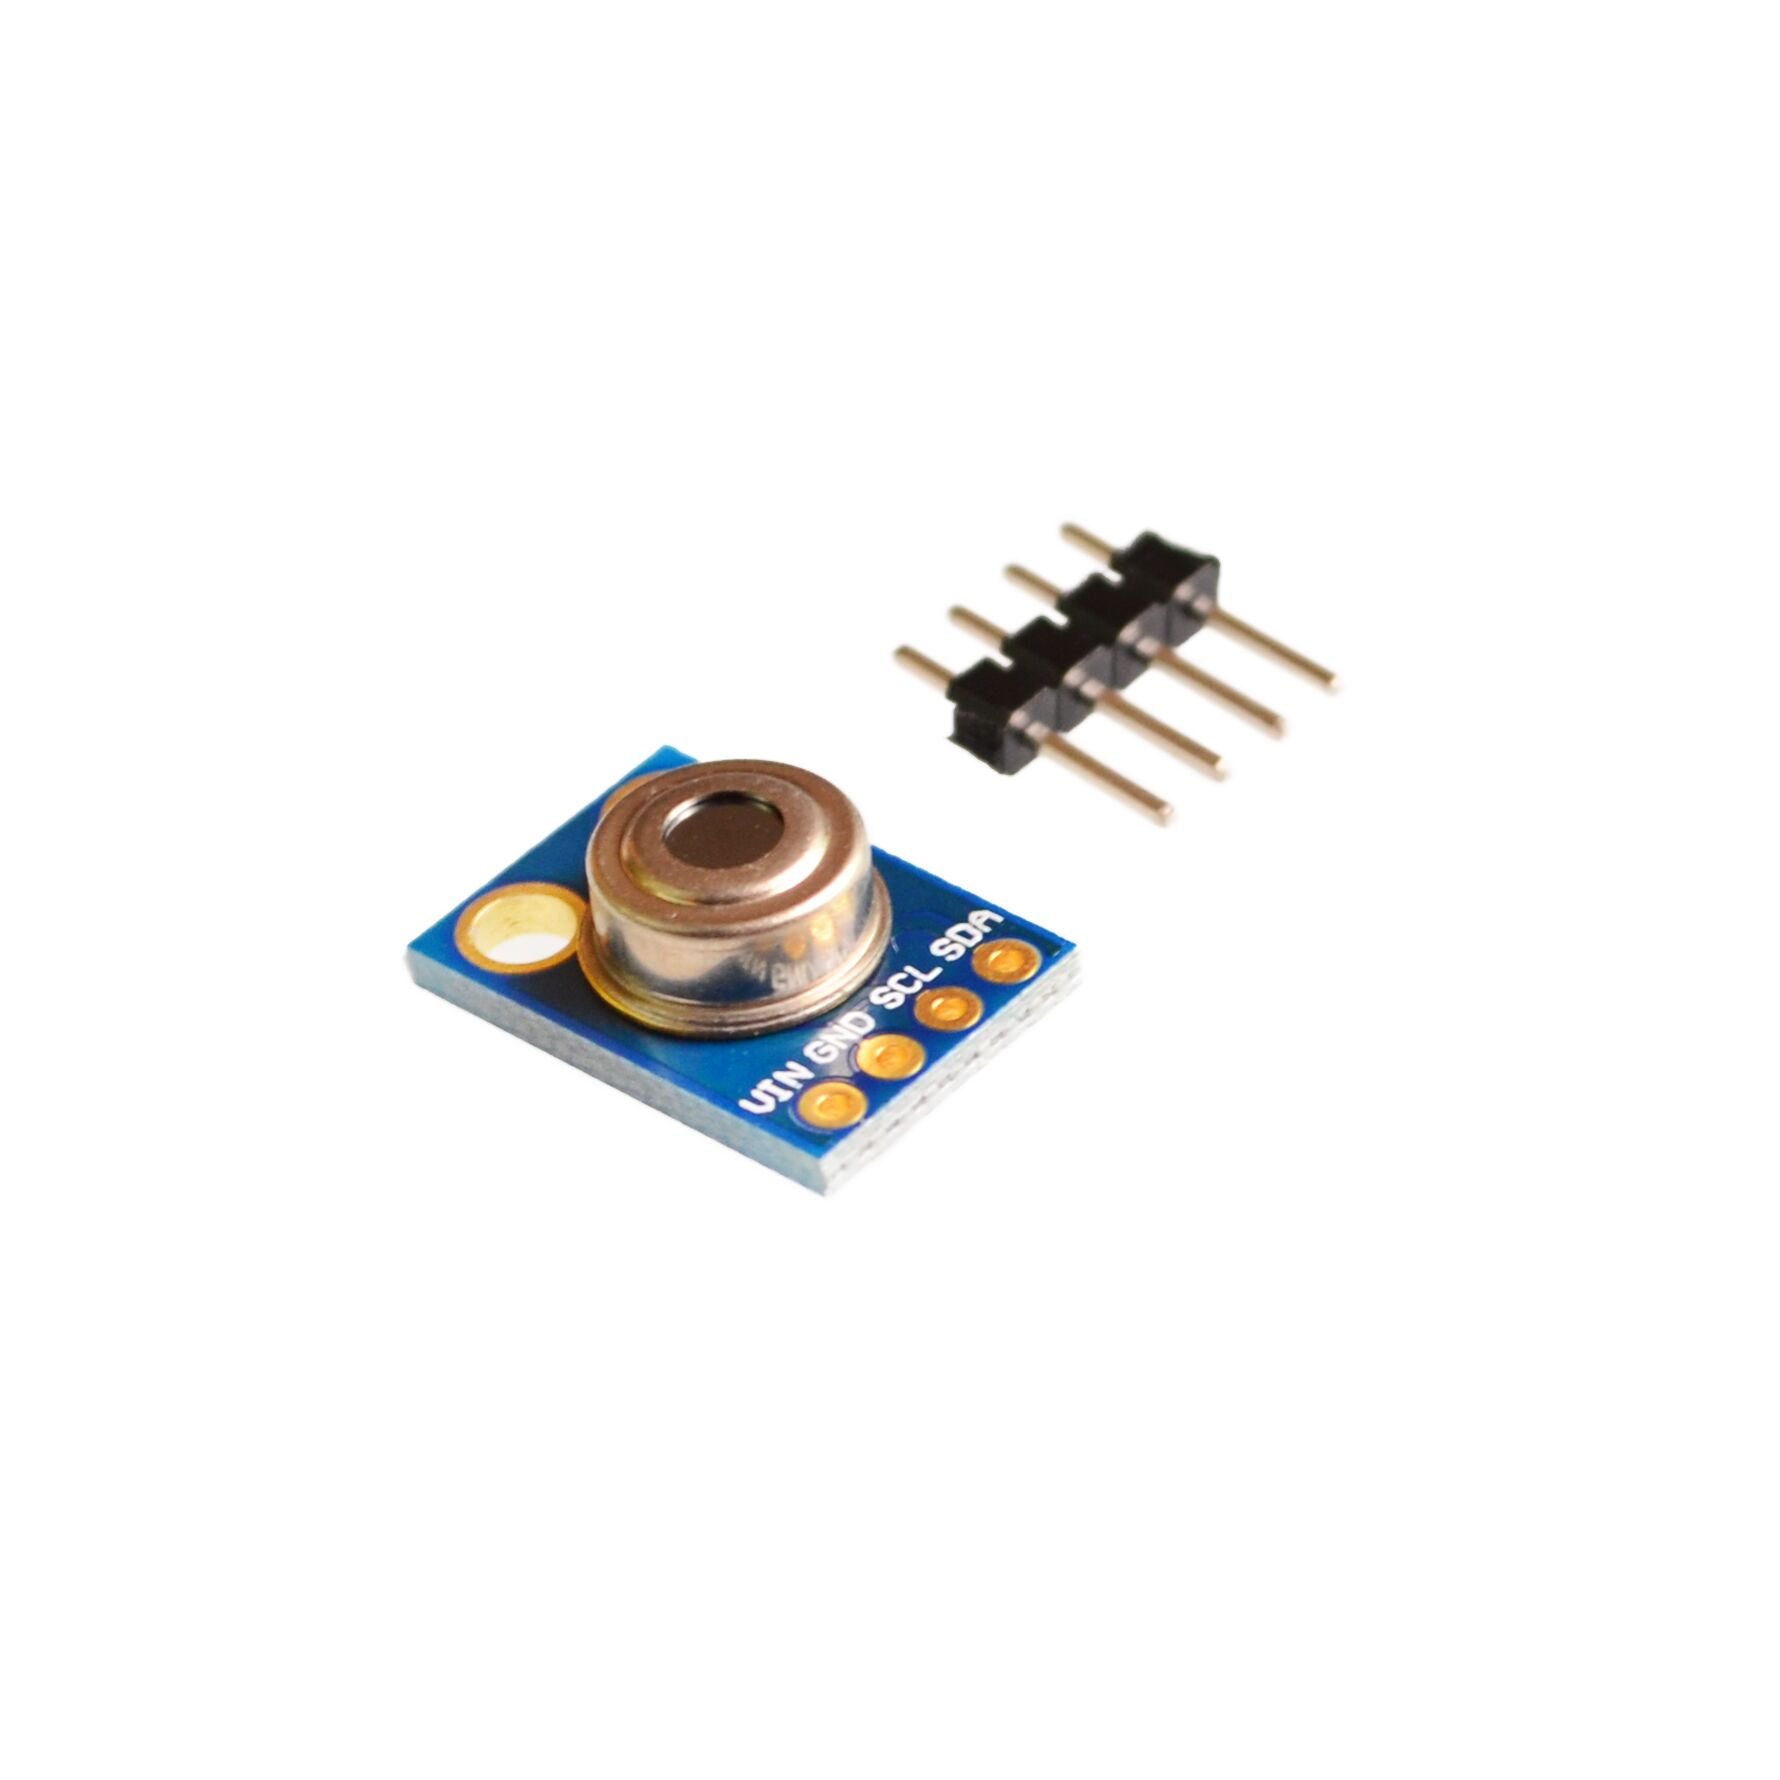 GY-906 MLX90614ESF New MLX90614 Contactless Temperature Sensor Module   Compatible